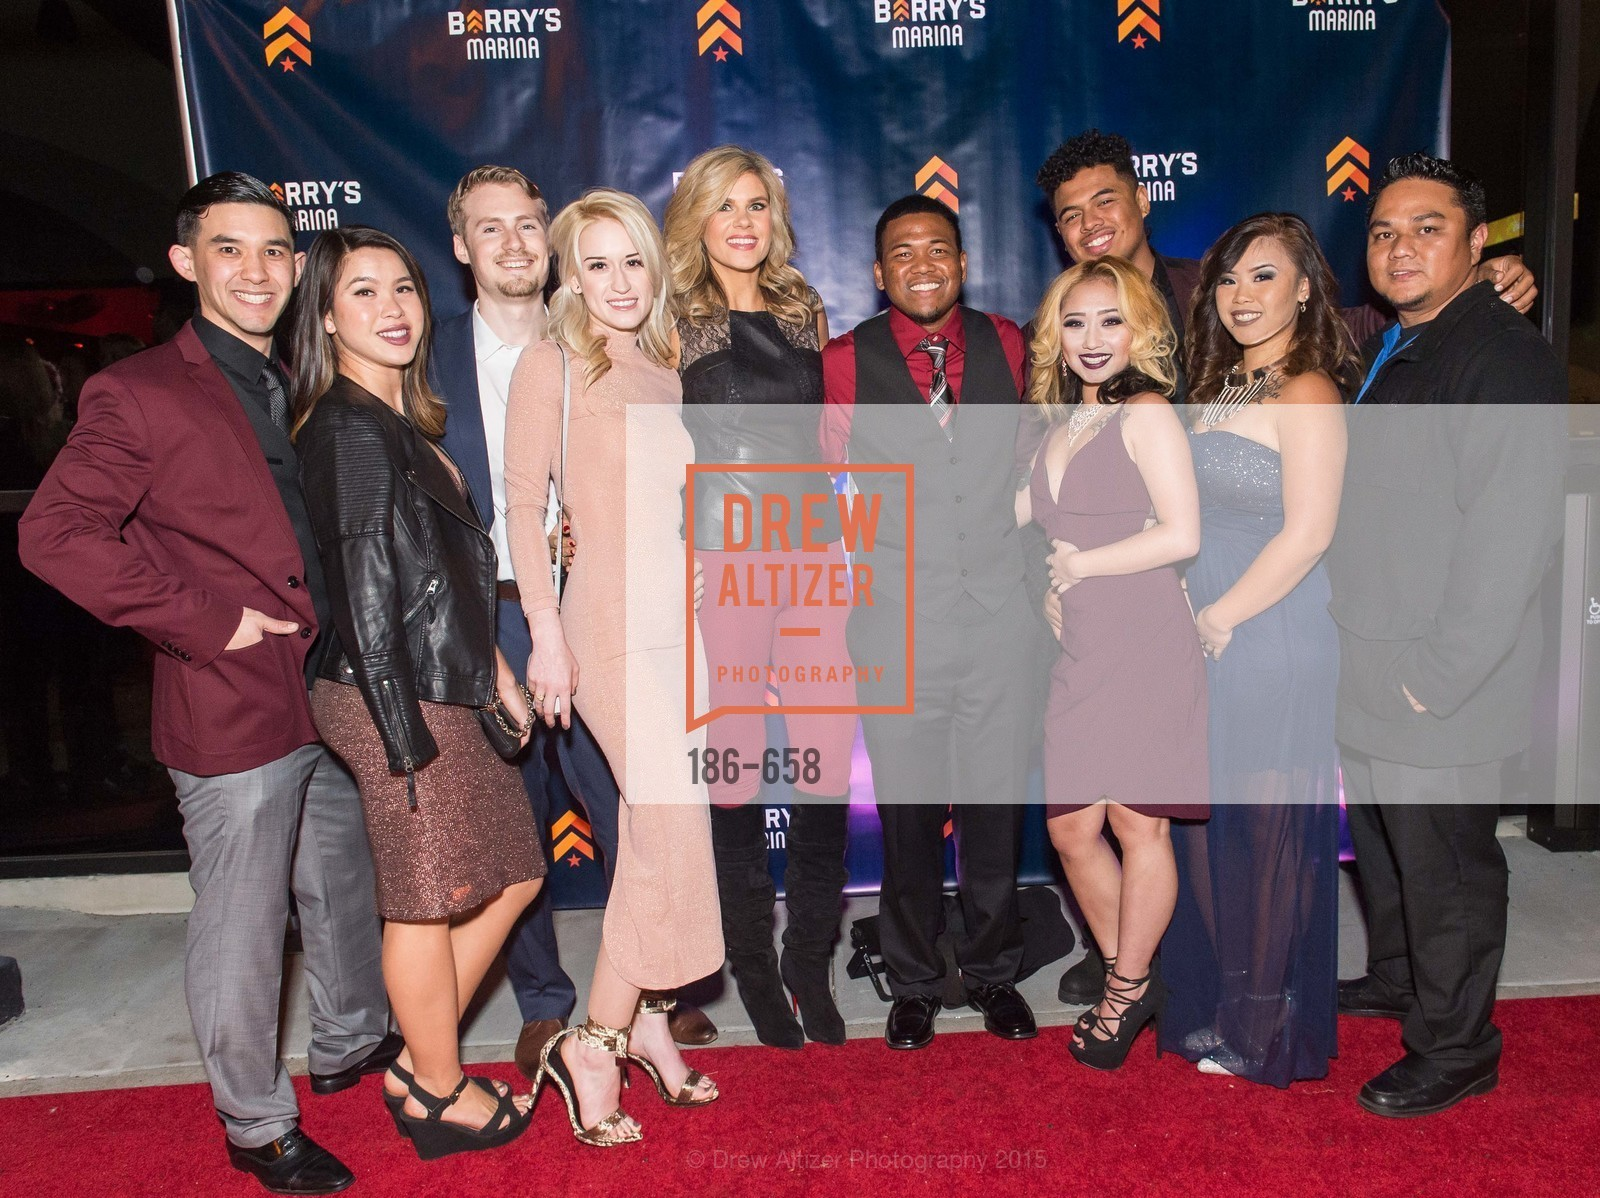 Alex Visico, Amanda Fornato, Riley Johnson, Melanie Tackett, Ali Nowell, TJ Jantock, Roy Hurte, Bonnie Louie, Kianna Louie, Jai Enriquez, Barry's Marina Opening, Barry's. 2246 Lombard Street, December 17th, 2015,Drew Altizer, Drew Altizer Photography, full-service agency, private events, San Francisco photographer, photographer california